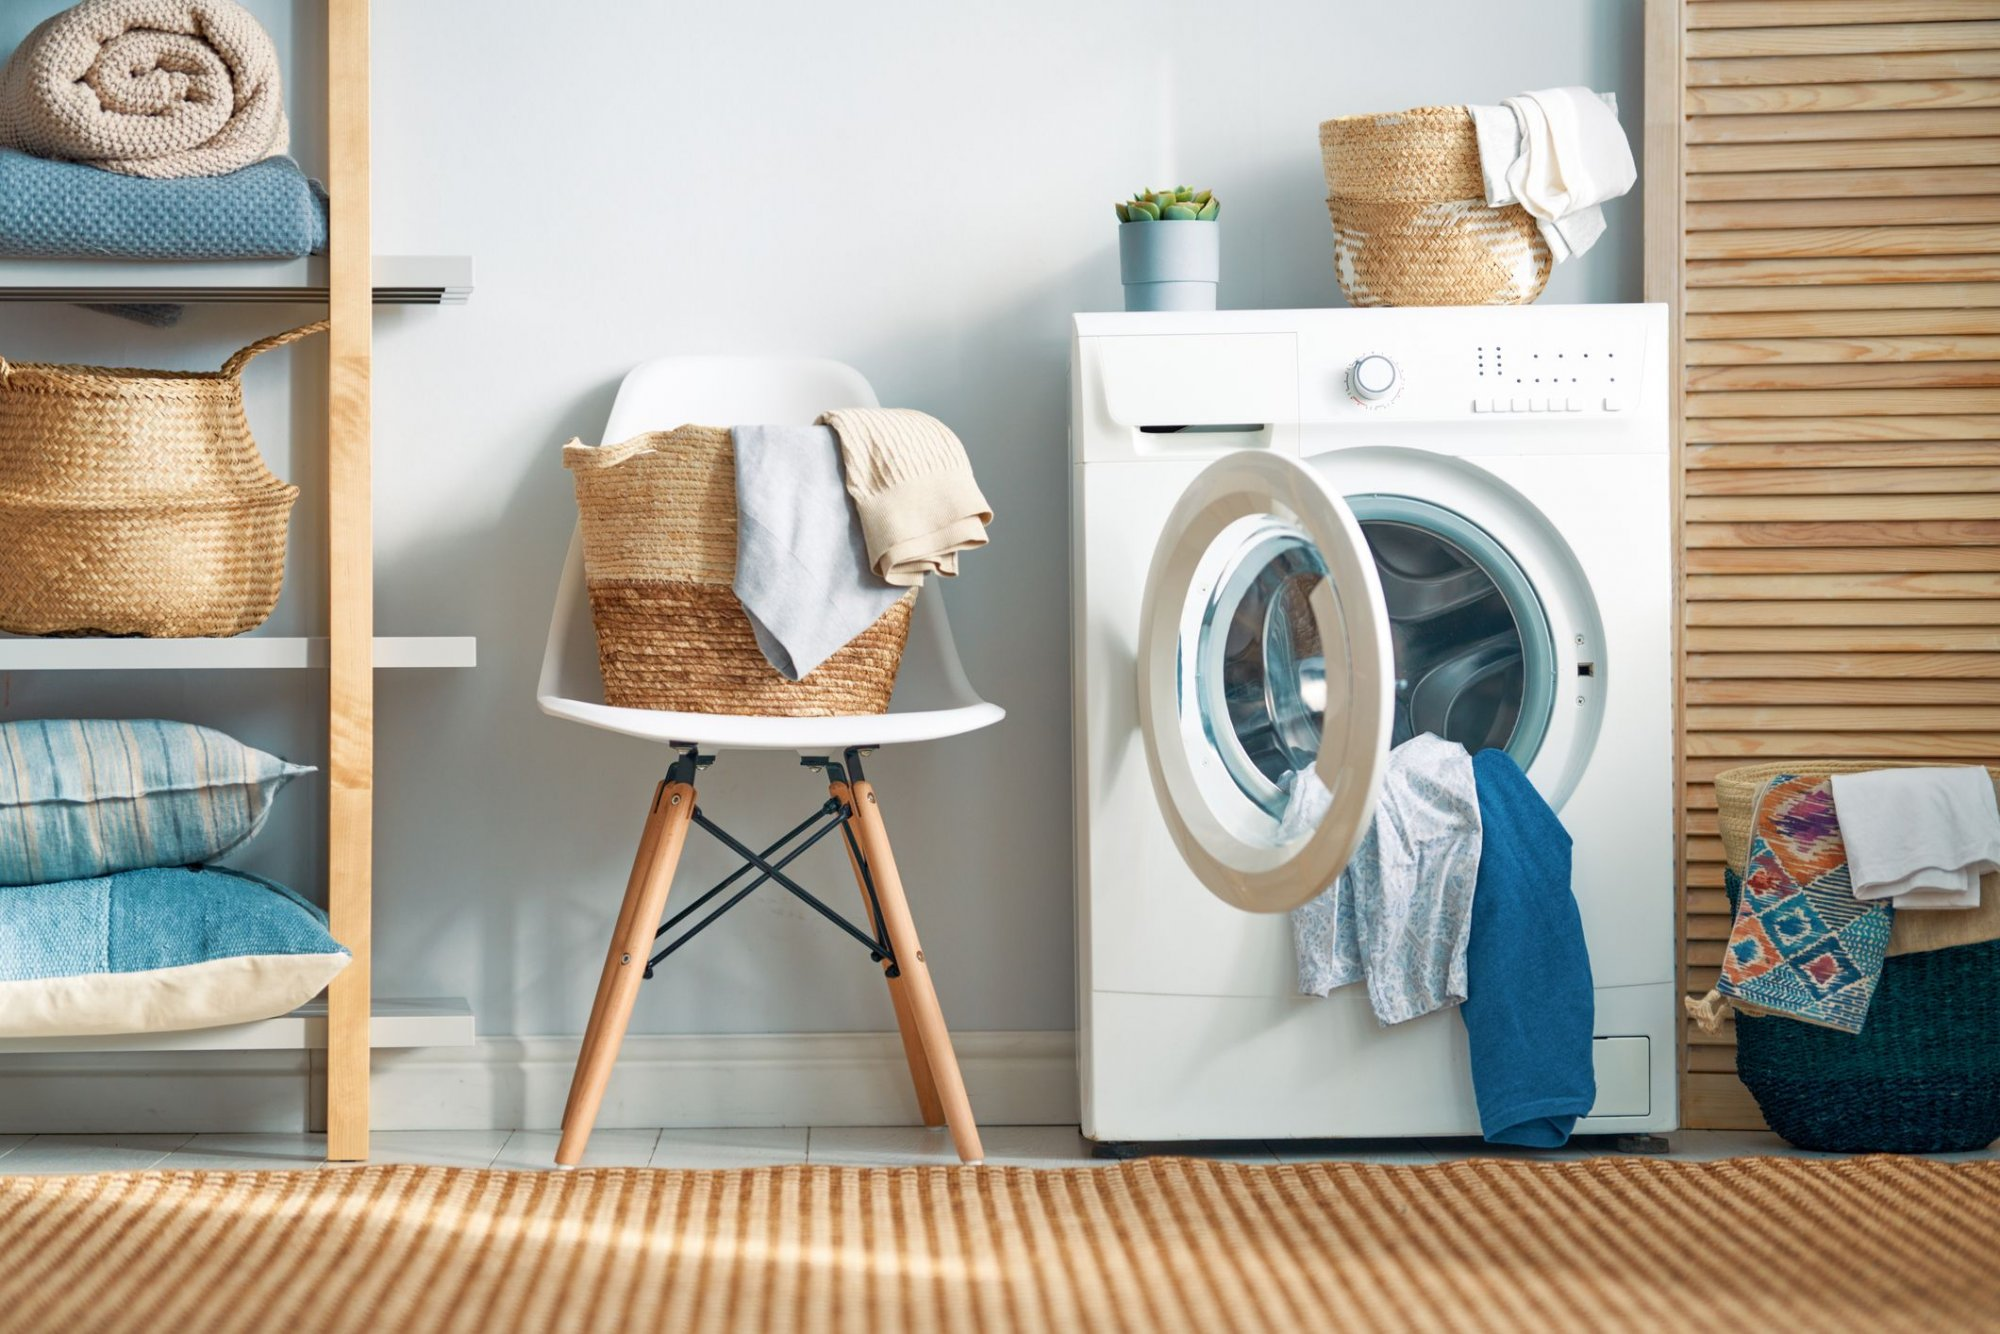 laundry-room-with-a-washing-machine-roya